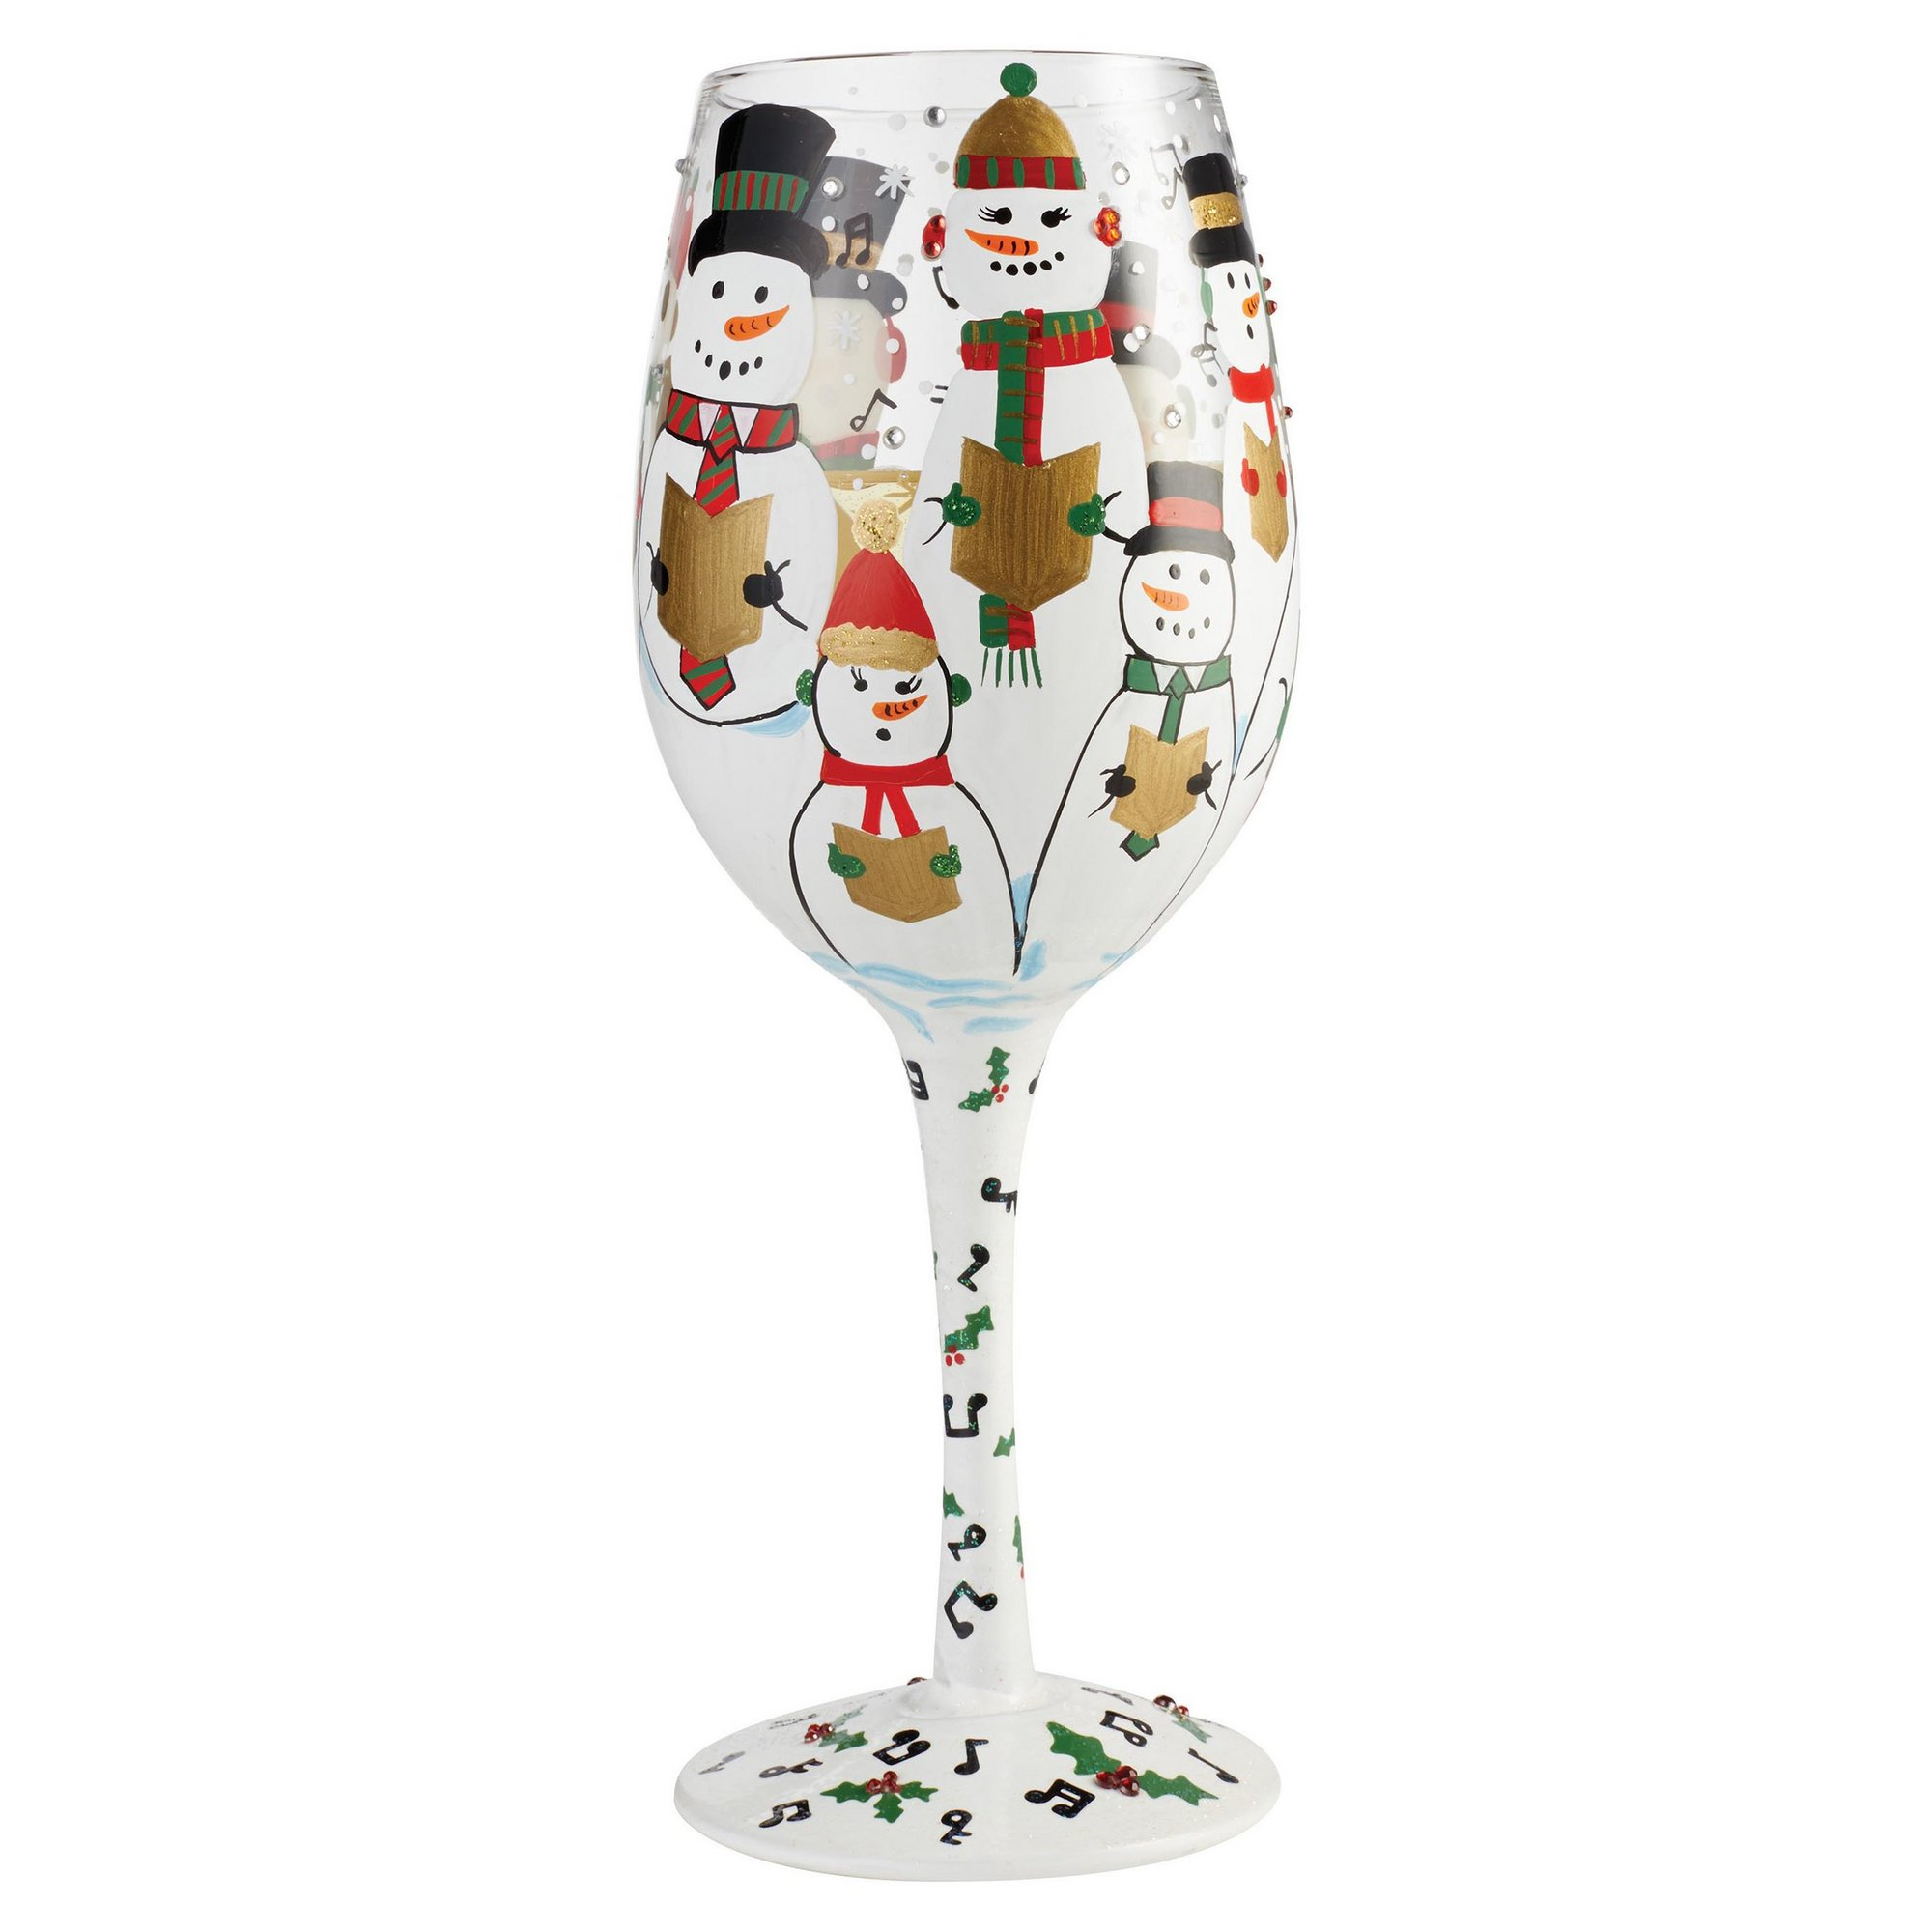 Image of Lolita Singing in the Snow Wine Glass